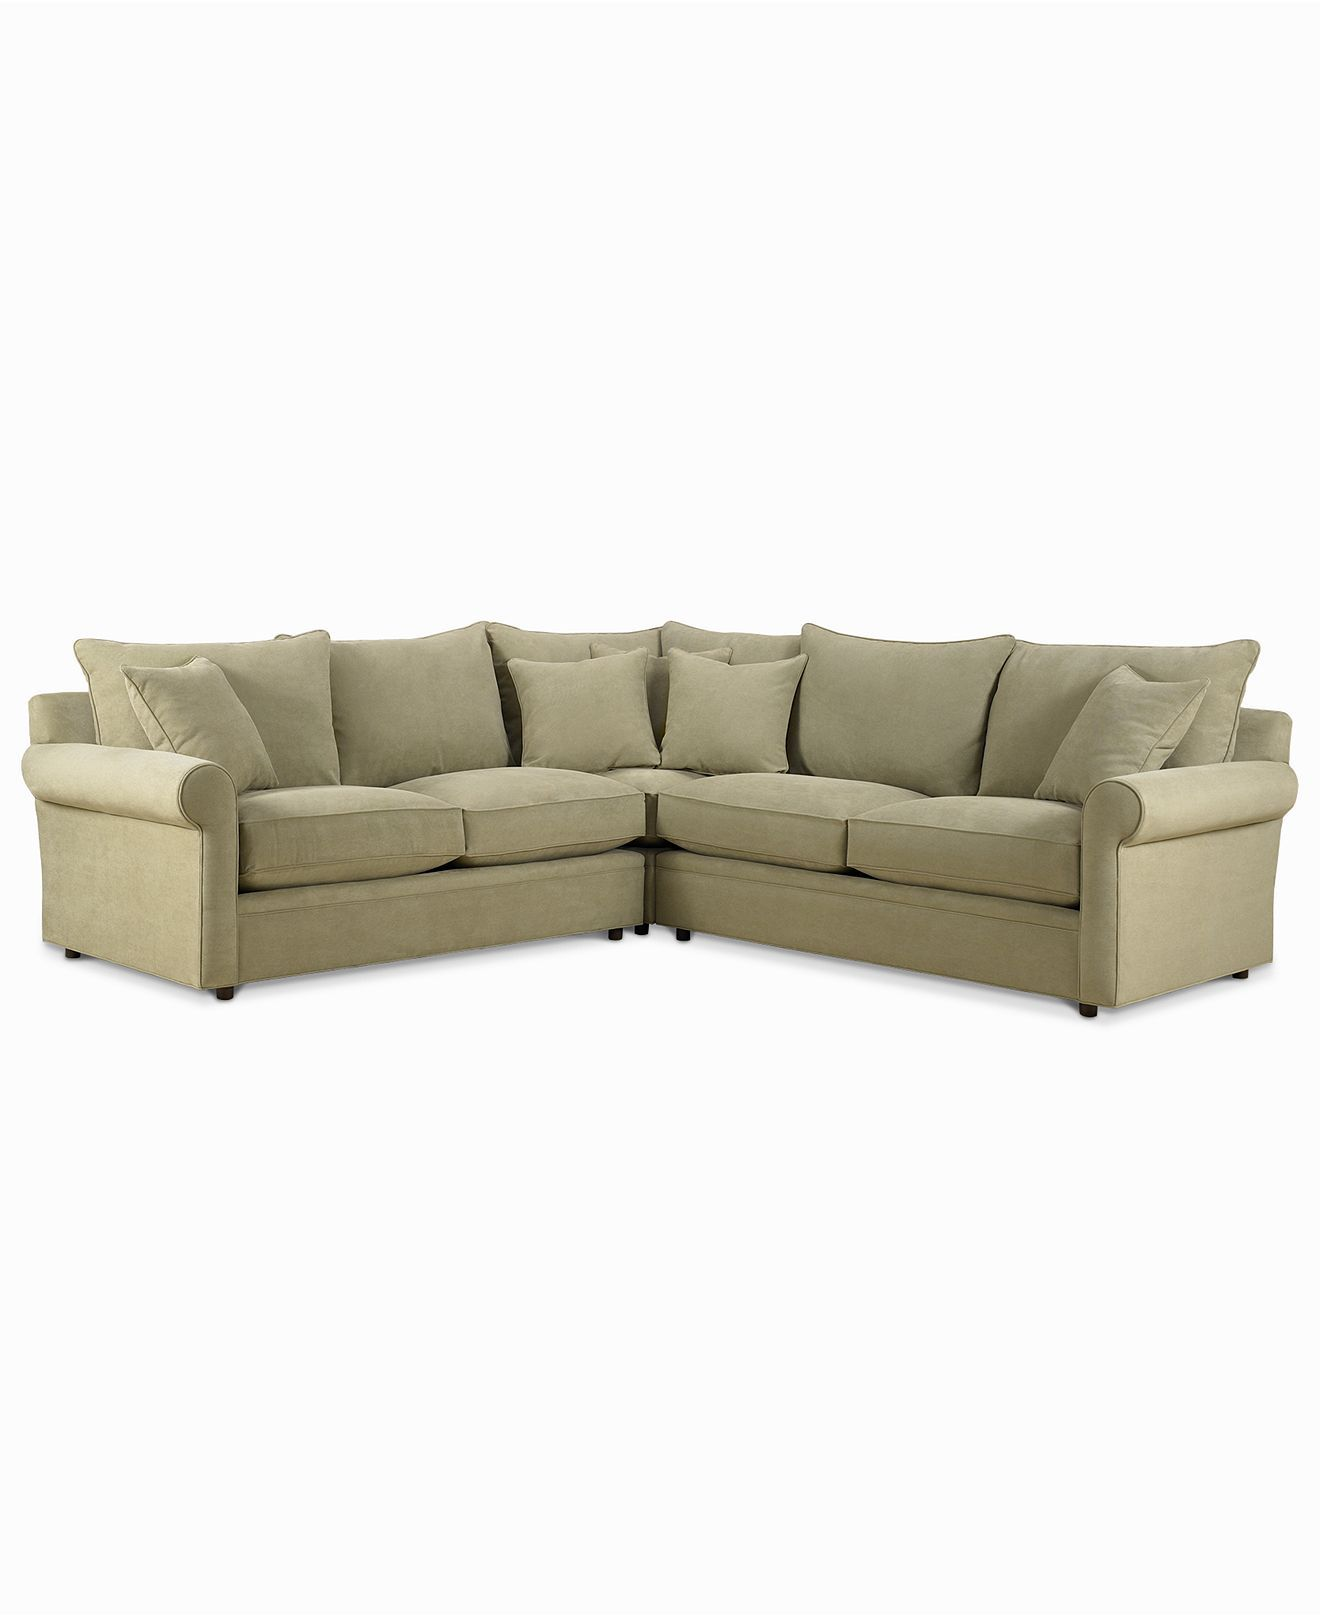 sofa microfiber fabric rochester sofas and dining suites doss 3 piece sectional apartment